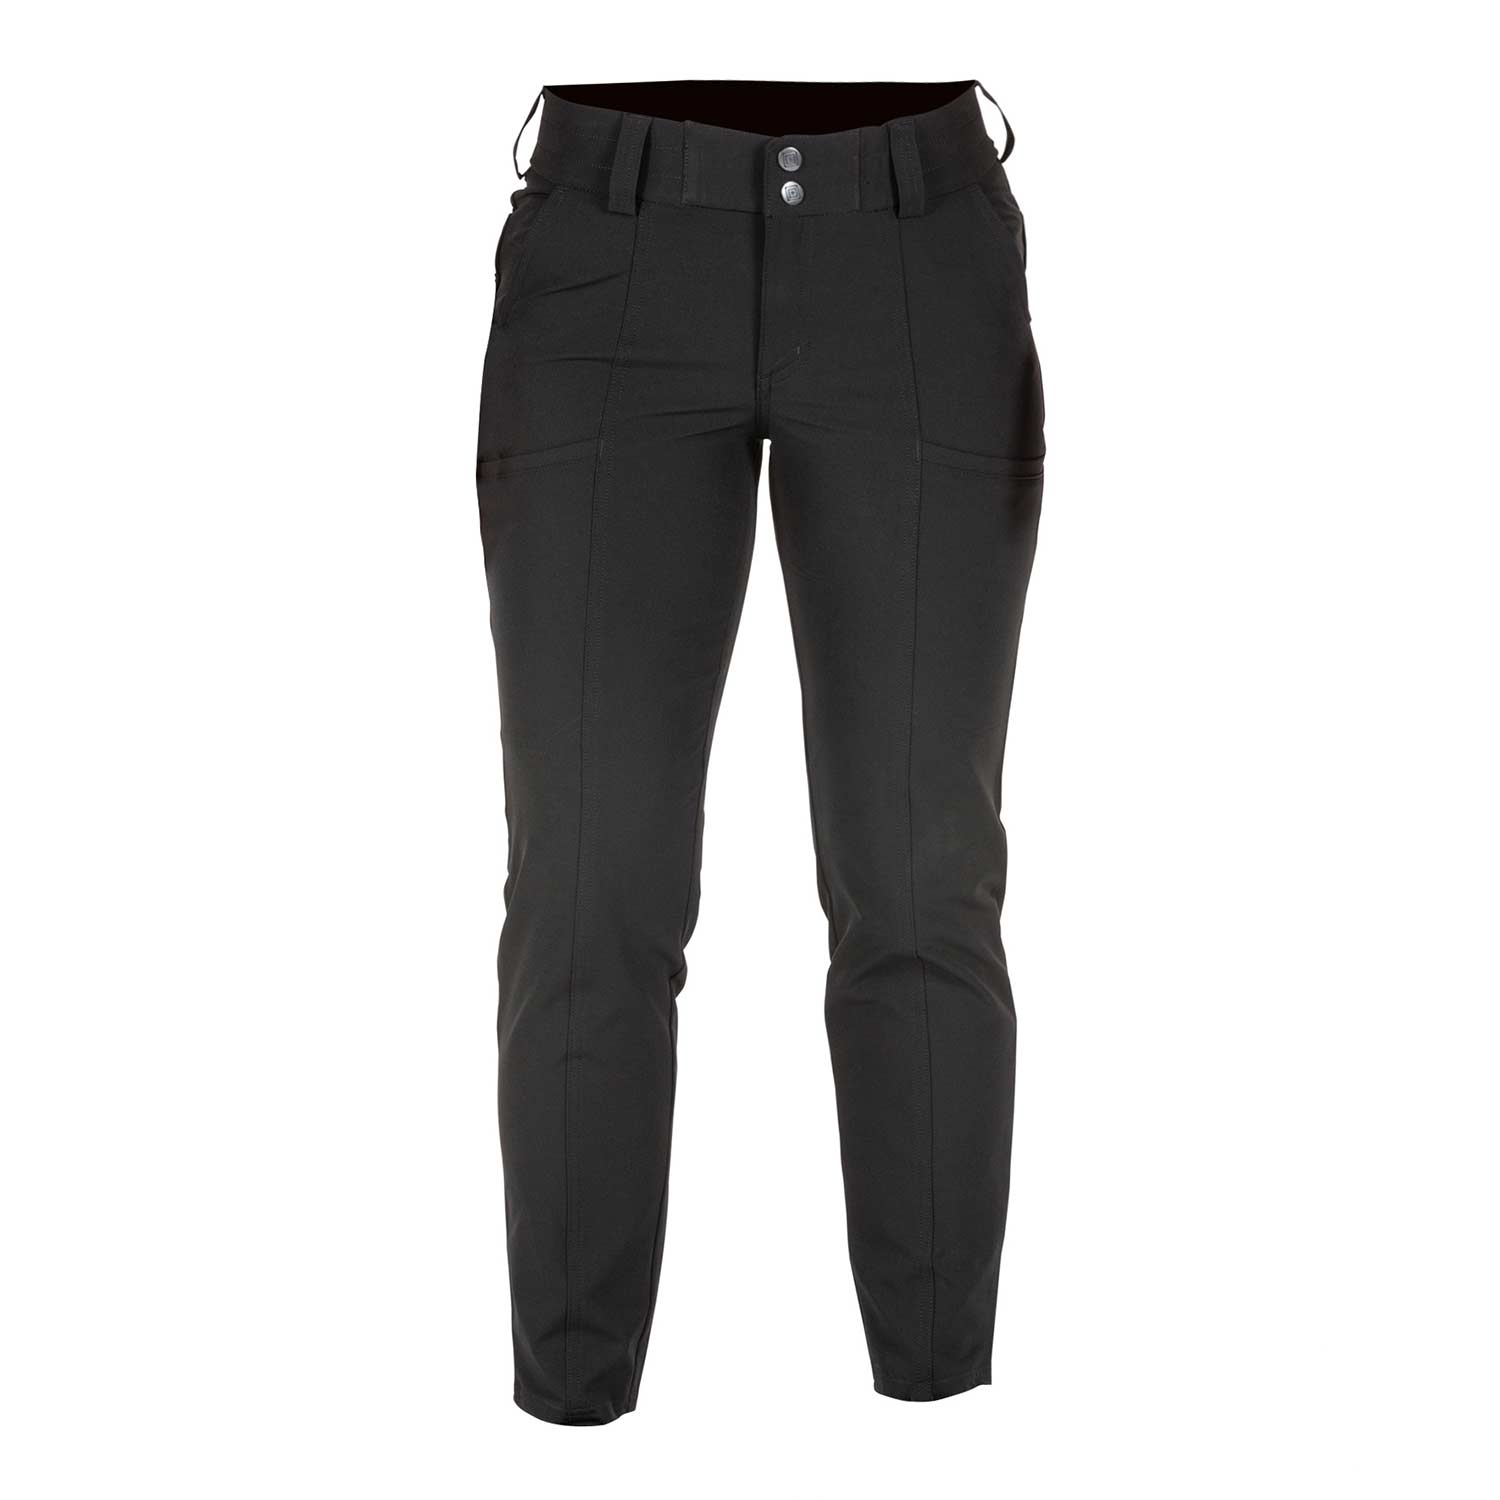 5.11 Tactical Women's Vista Pants